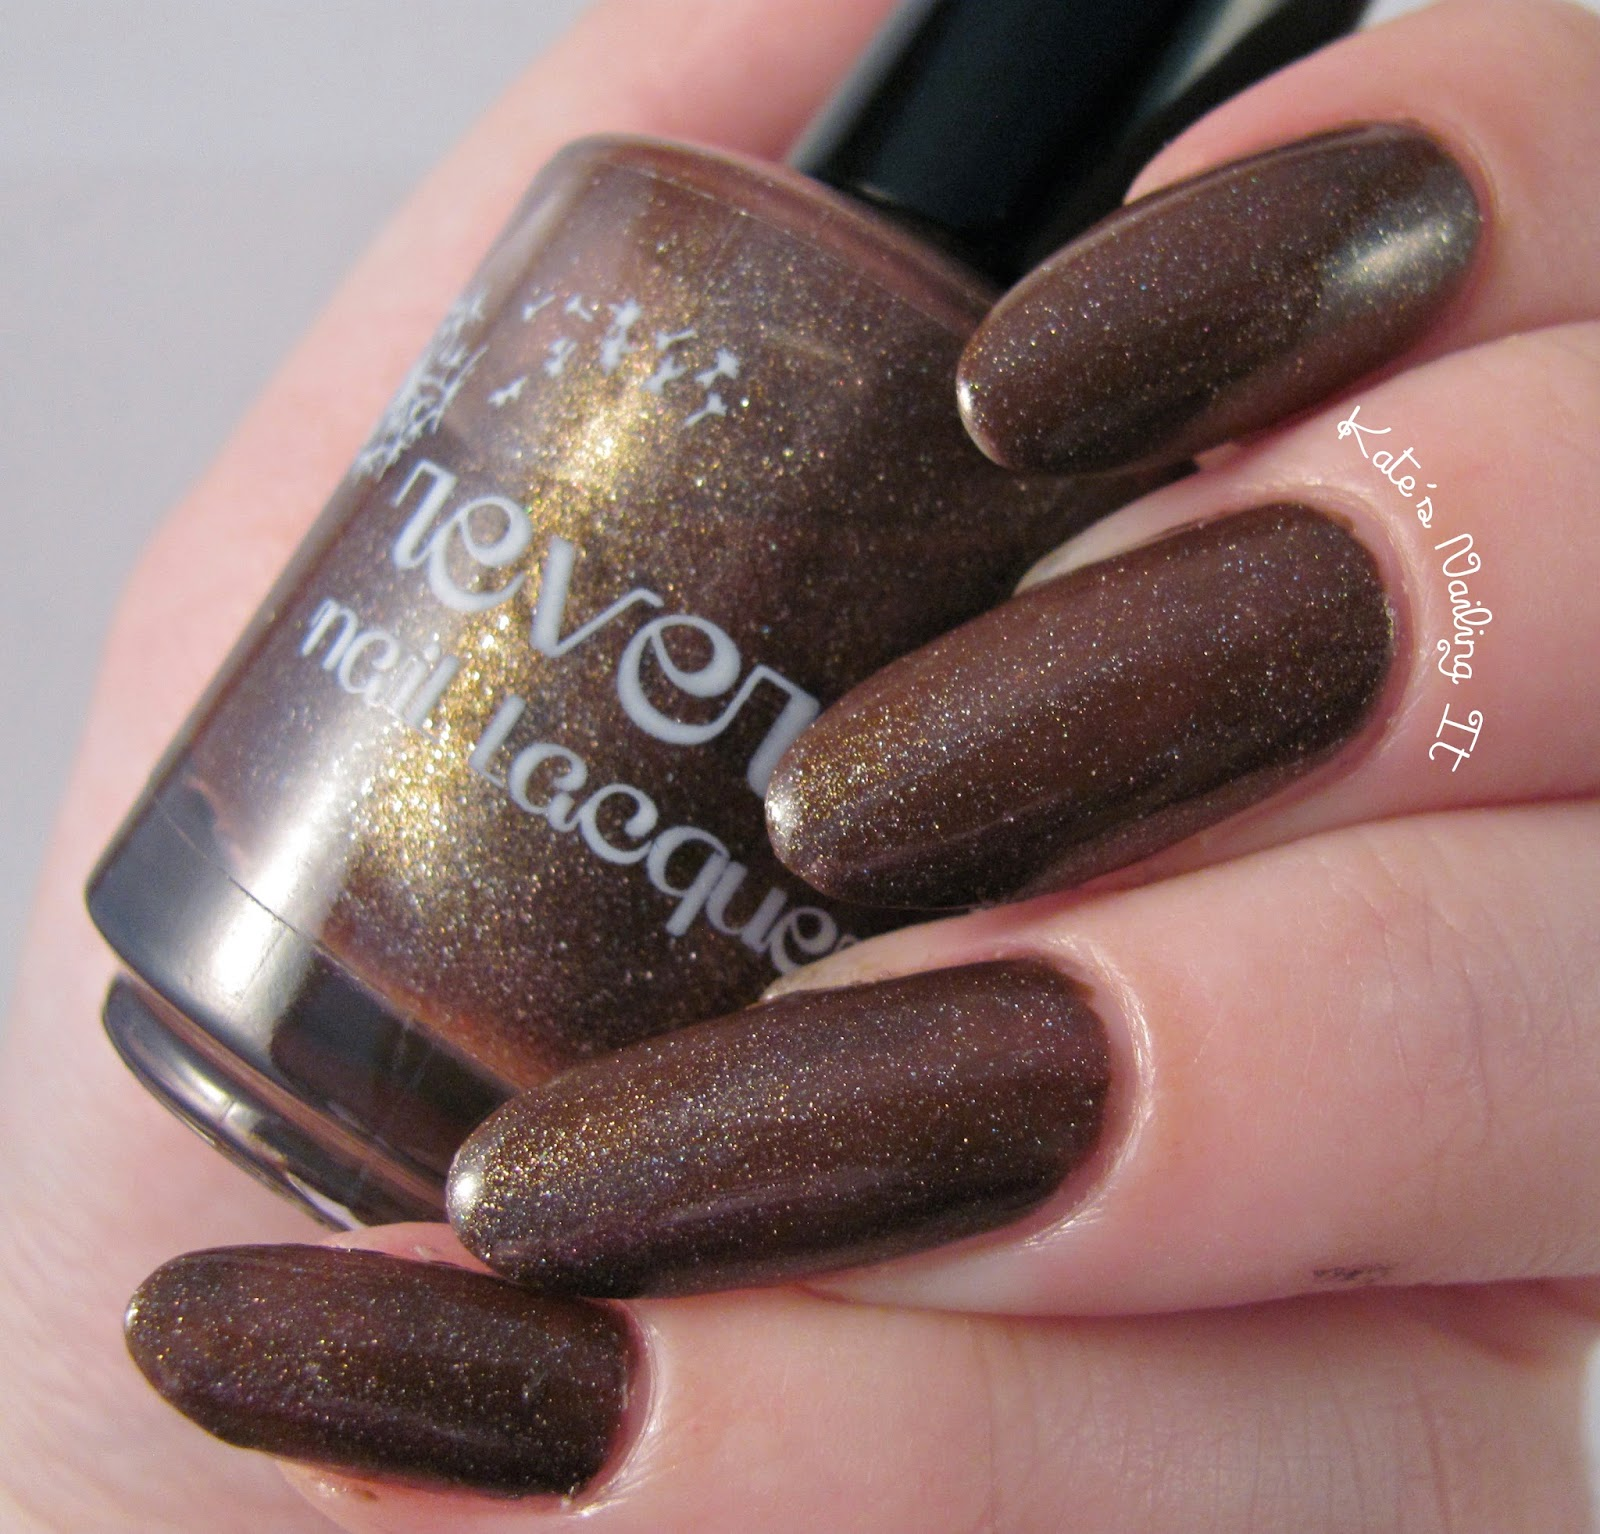 Kates Nailing It Reverie Nail Lacuqer Hot Chocolate Nail Art